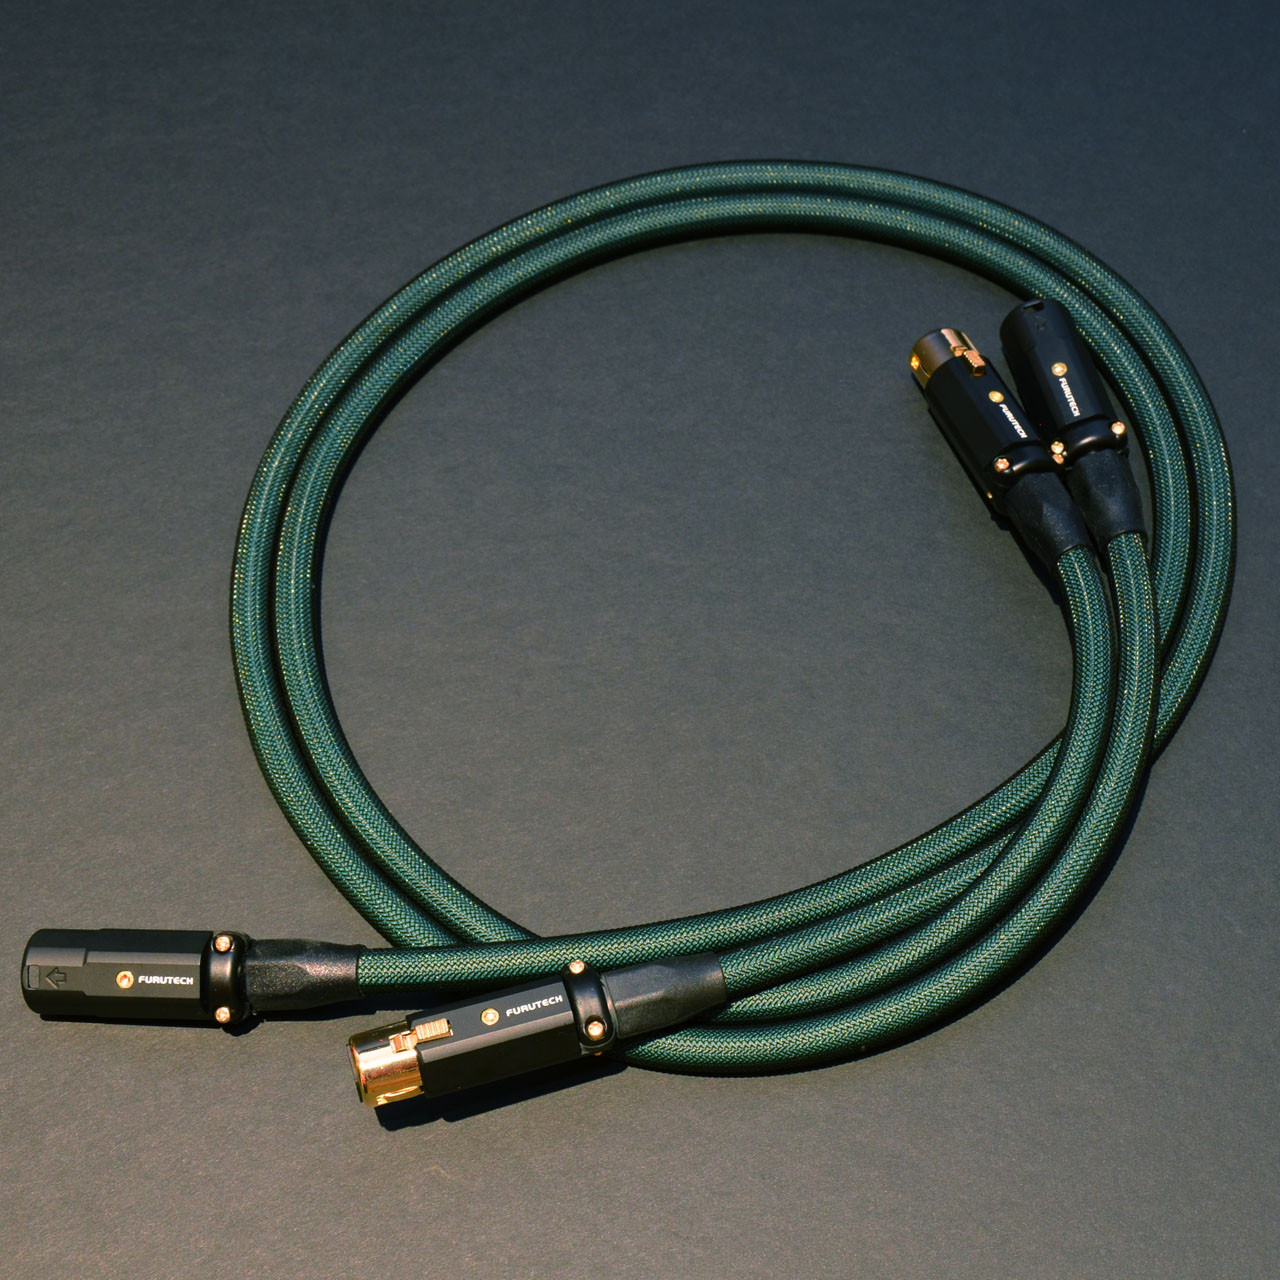 Krispy Kables Stage 2 XLR Interconnects